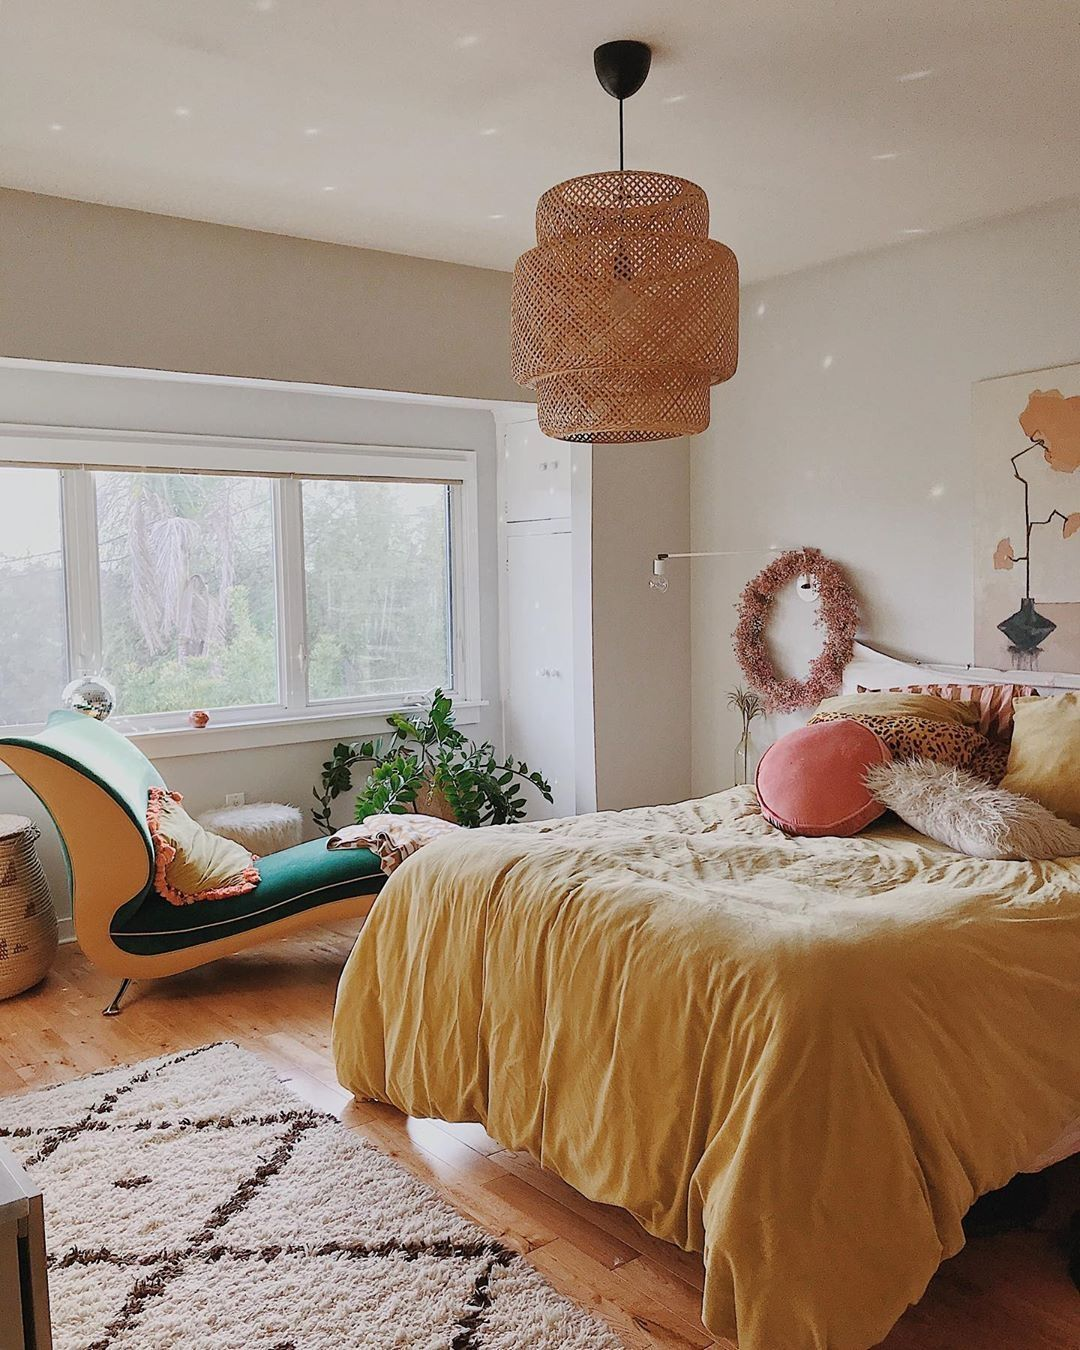 Tips And Ideas For Decorating A Bedroom In Vintage Style: 45 Best Vintage Bedroom Decorating Ideas That Are